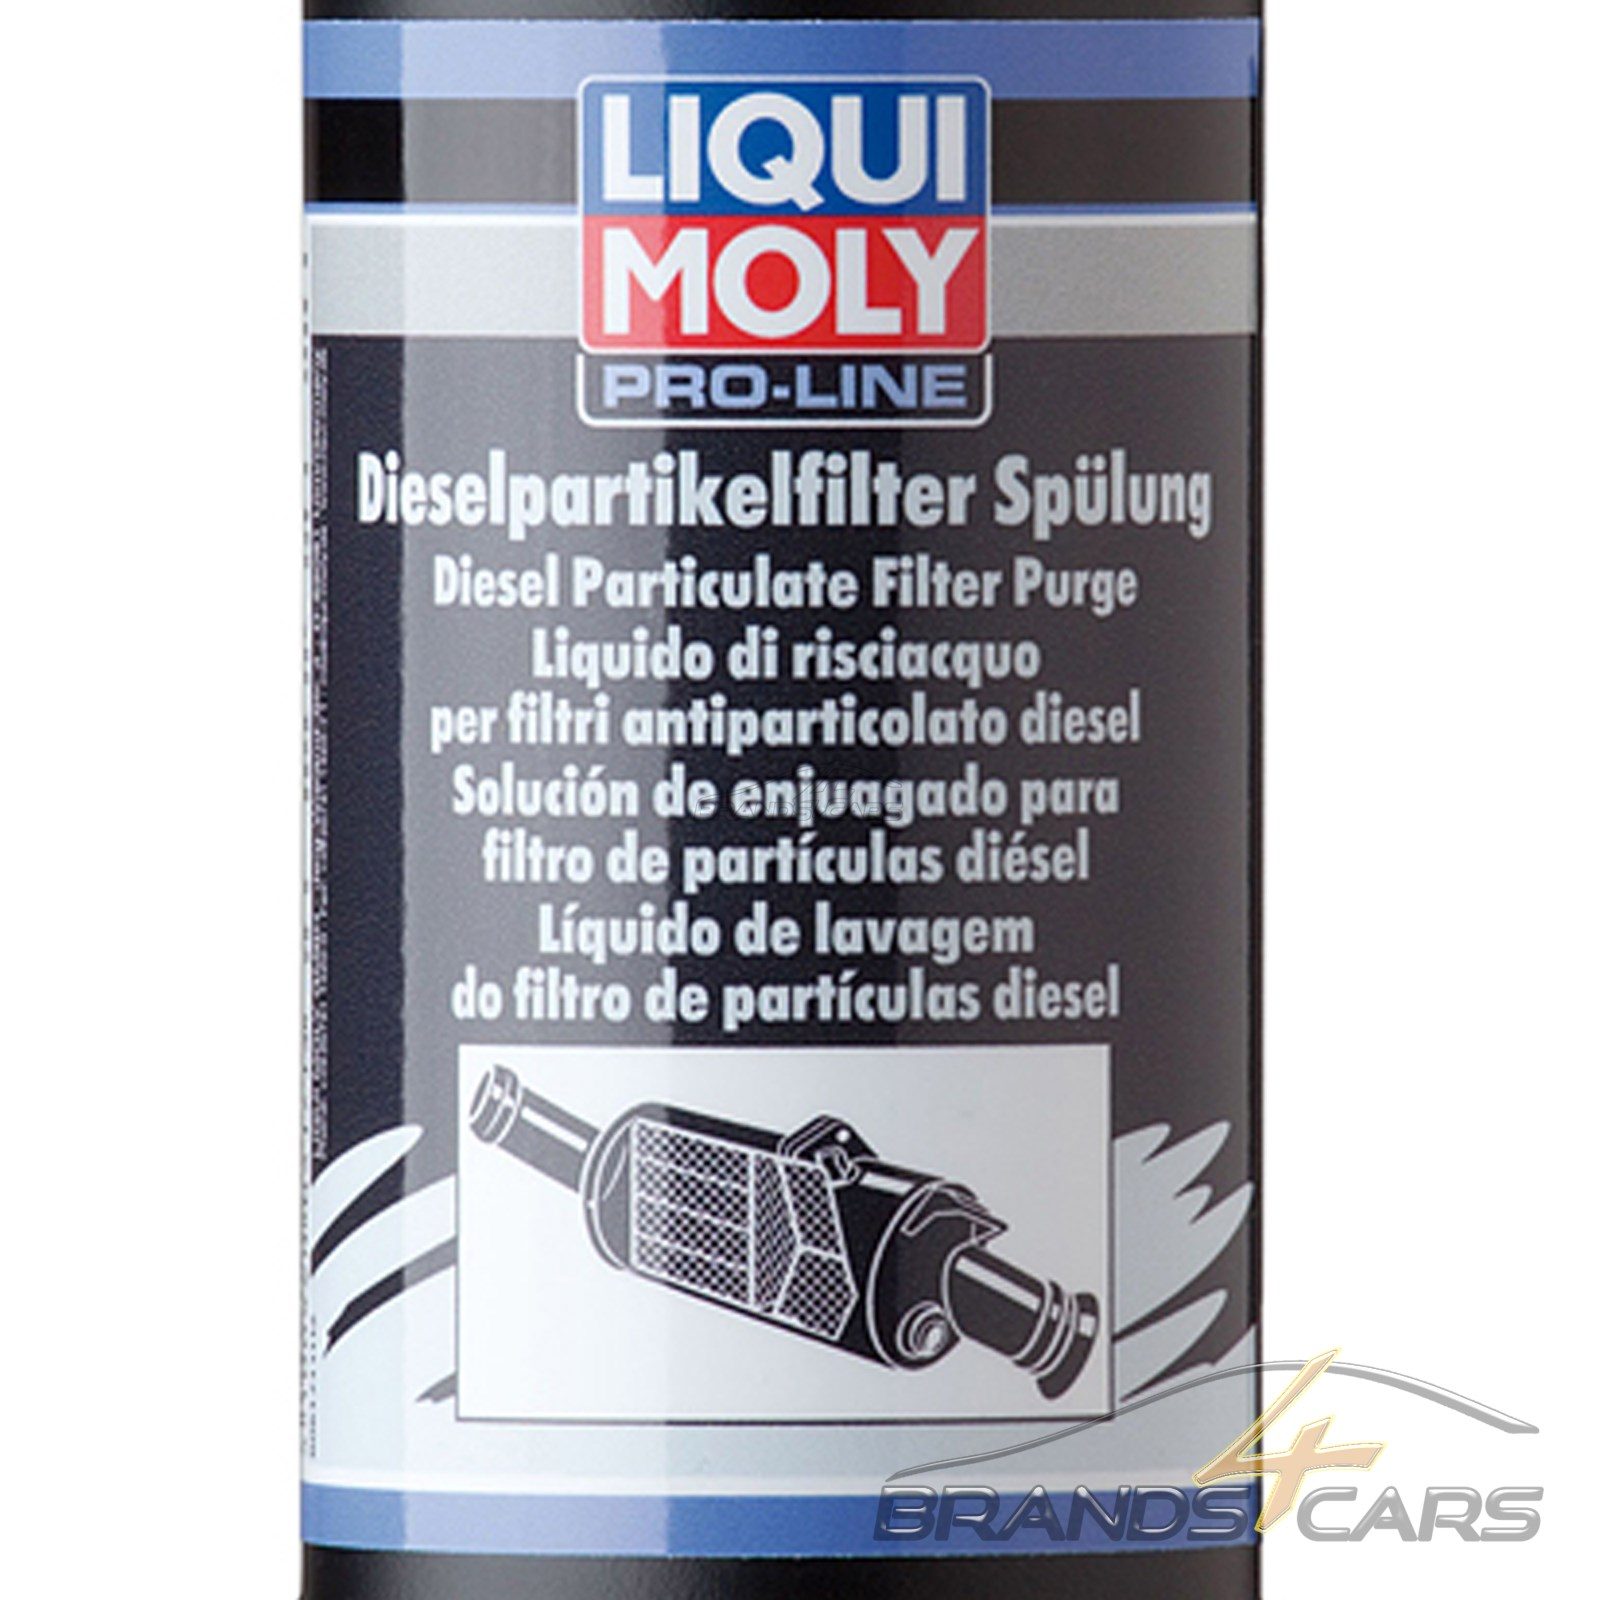 liqui moly pro line proline dieselpartikelfilter reiniger. Black Bedroom Furniture Sets. Home Design Ideas